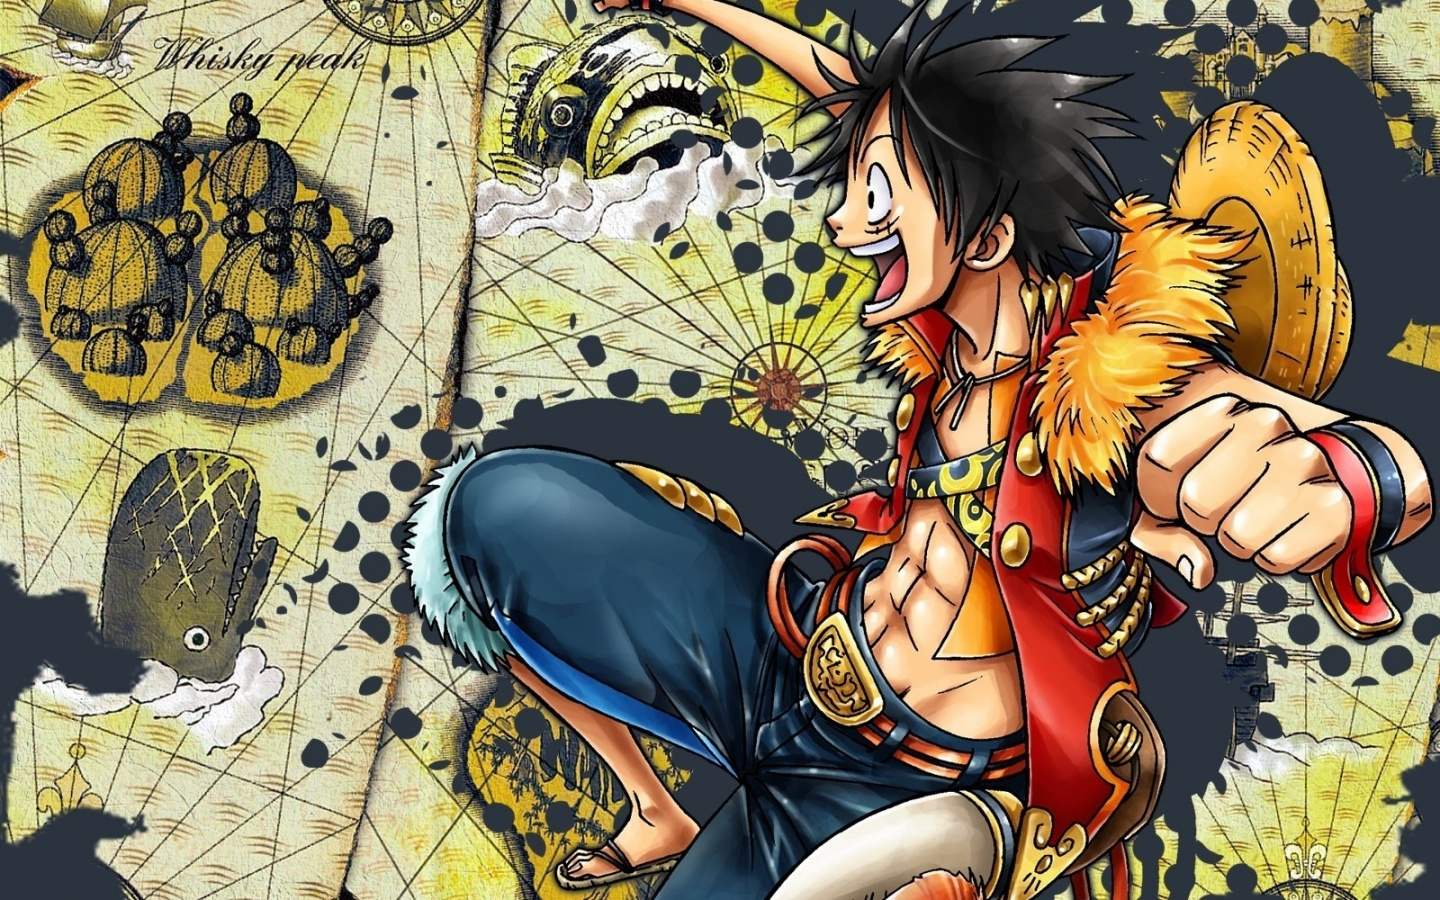 1440x900 Luffy Monkey Luffy From One Piece Desktop Pc And